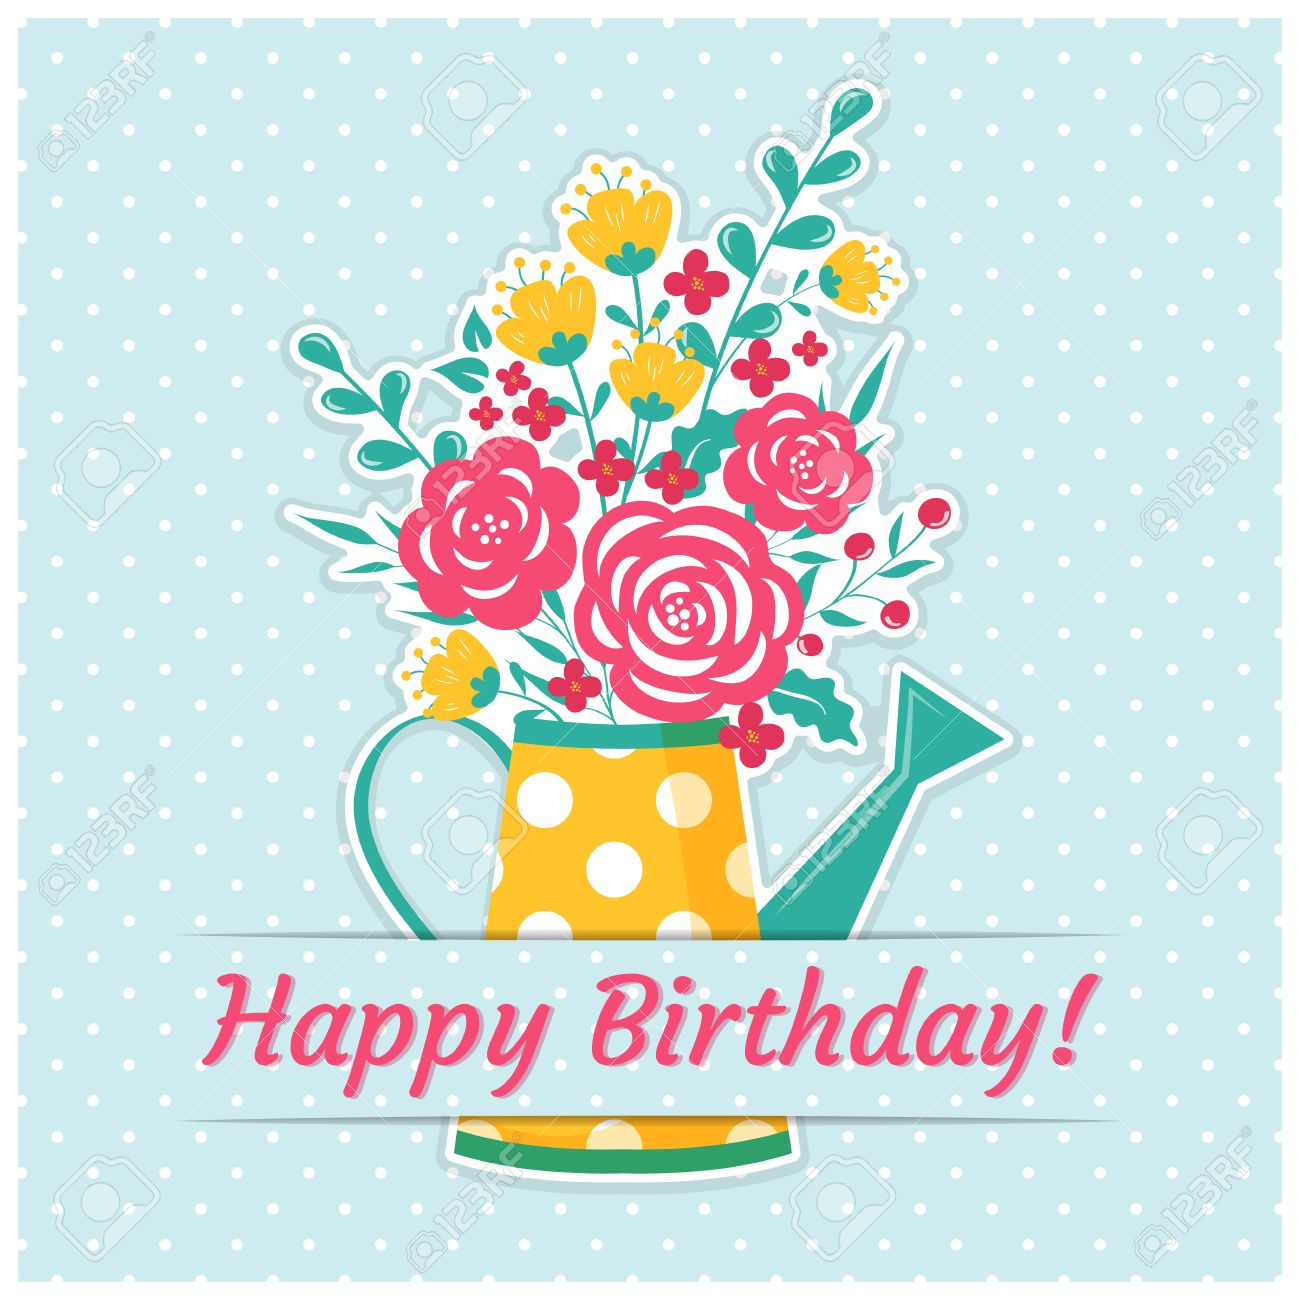 Happy Birthday Greeting Card With A Watering Can A Bouquet